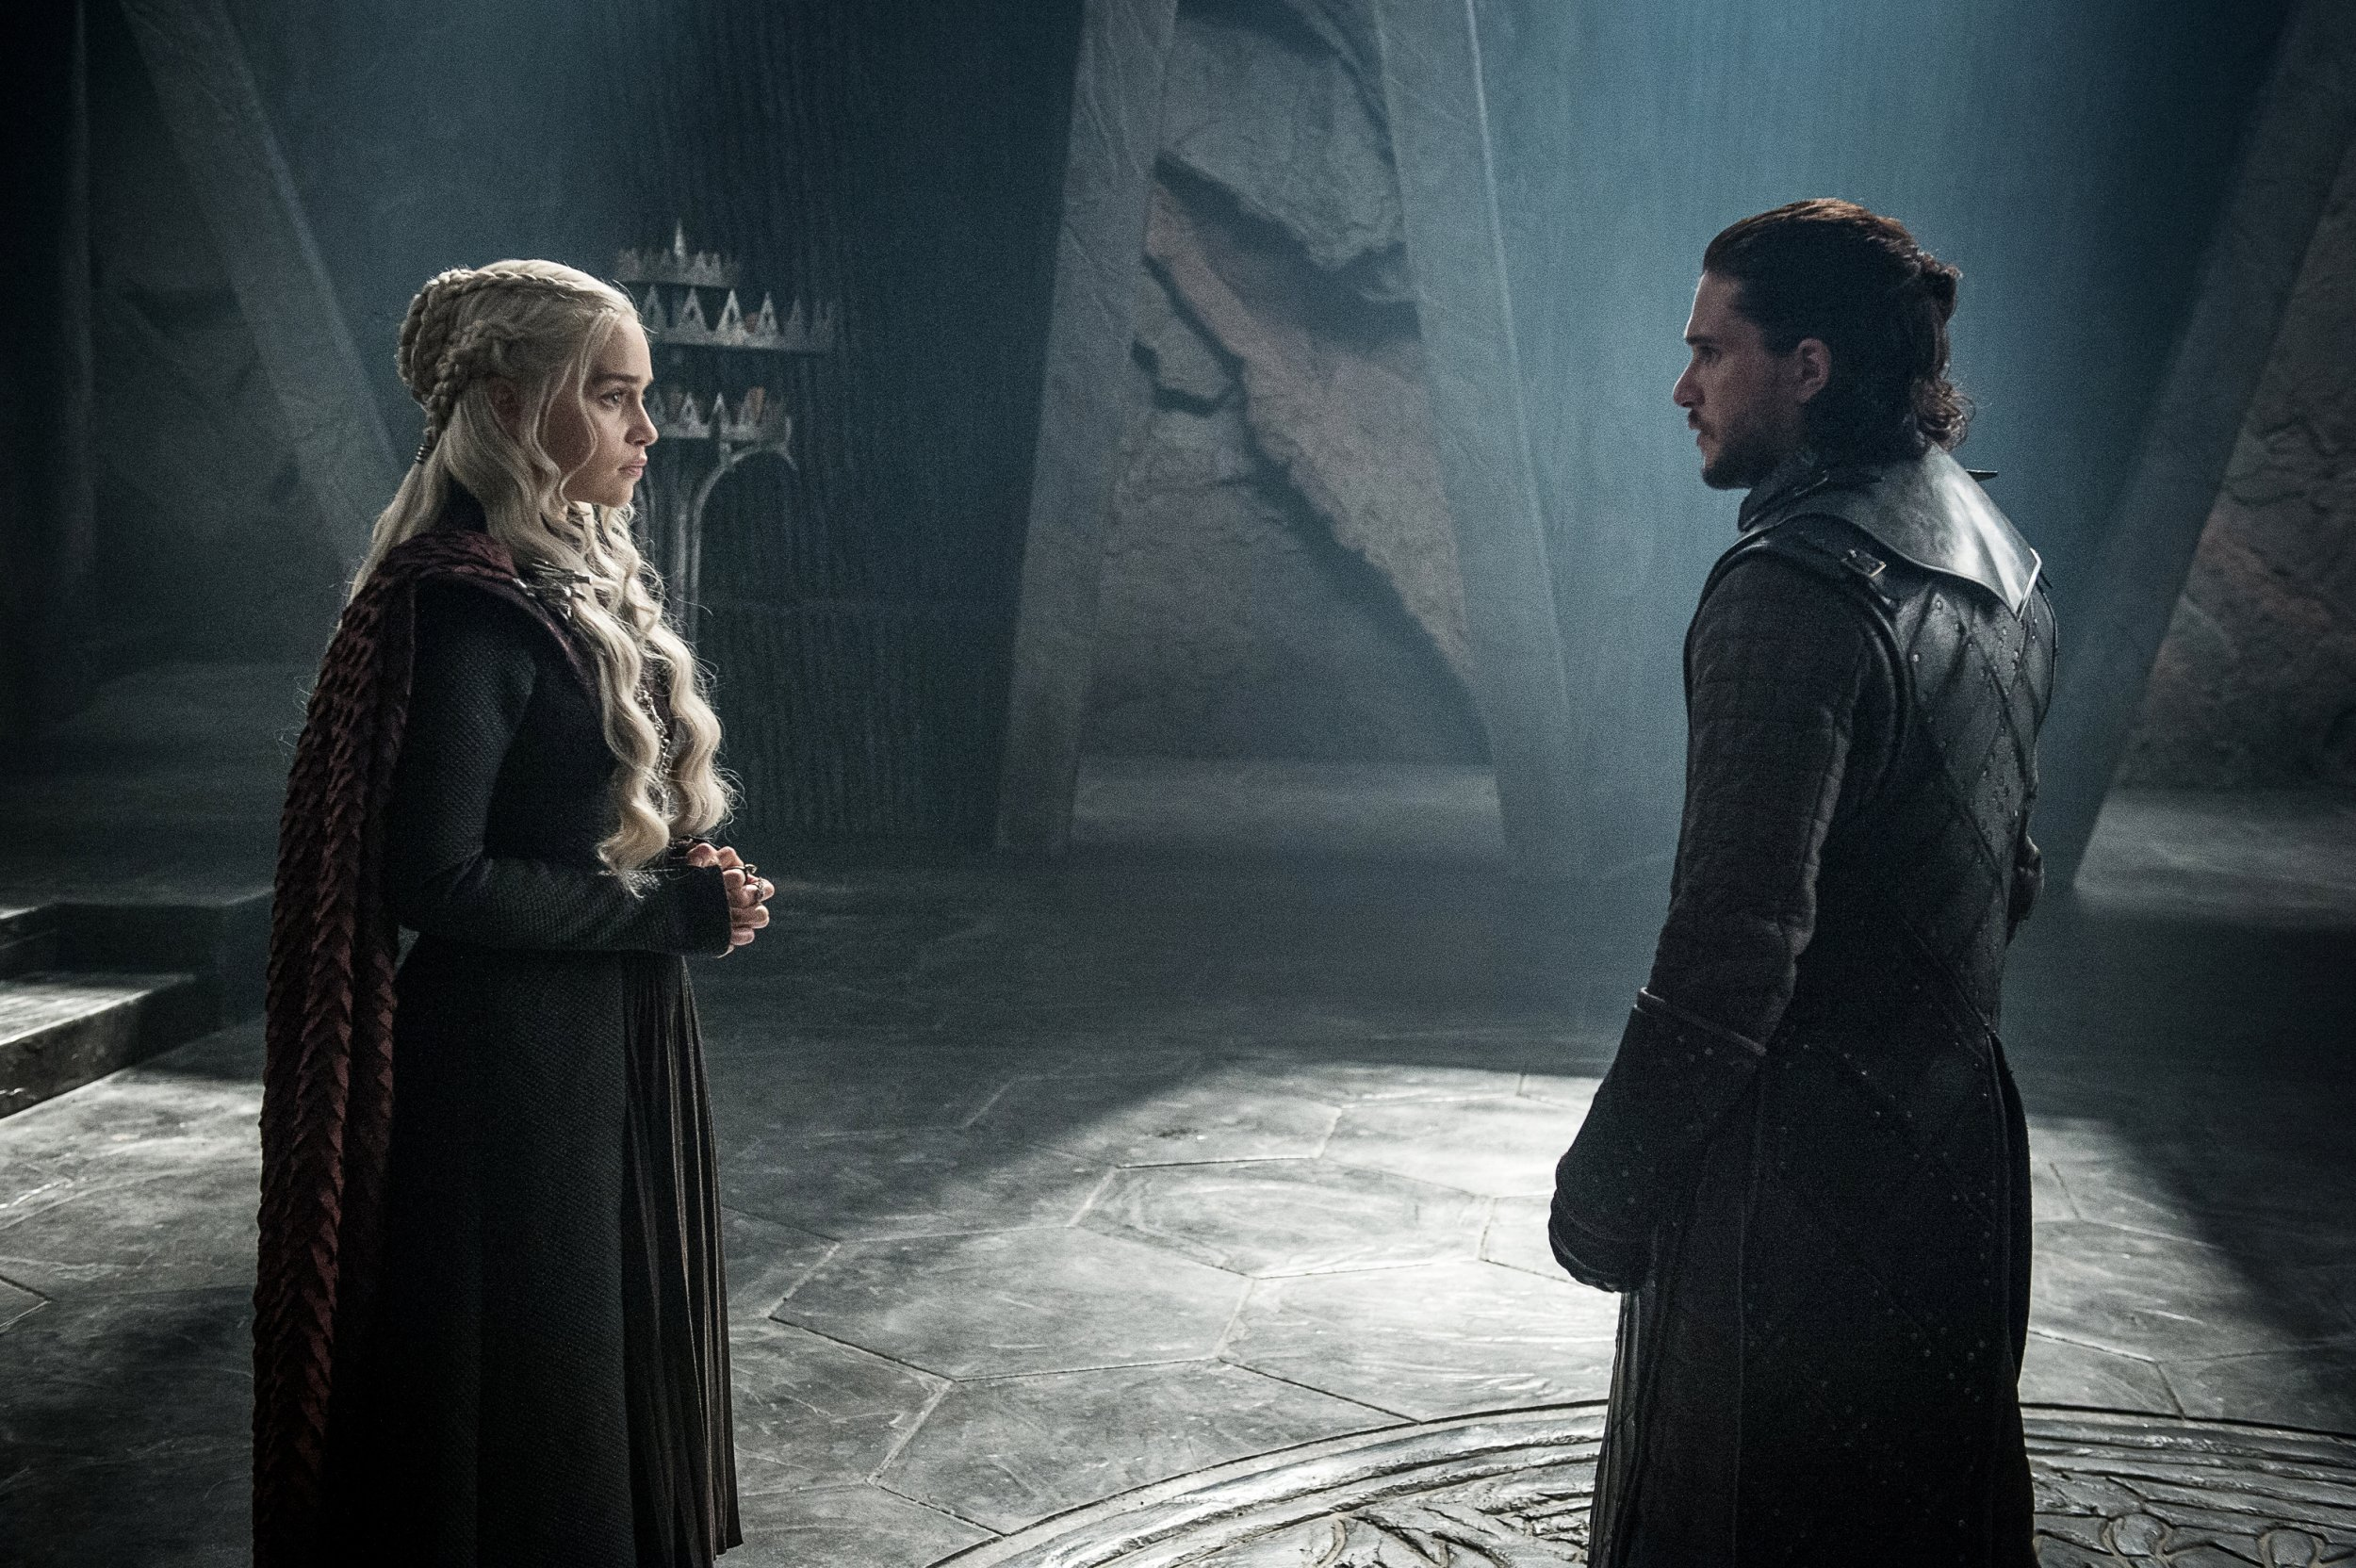 Jon Snow and Daenerys meet